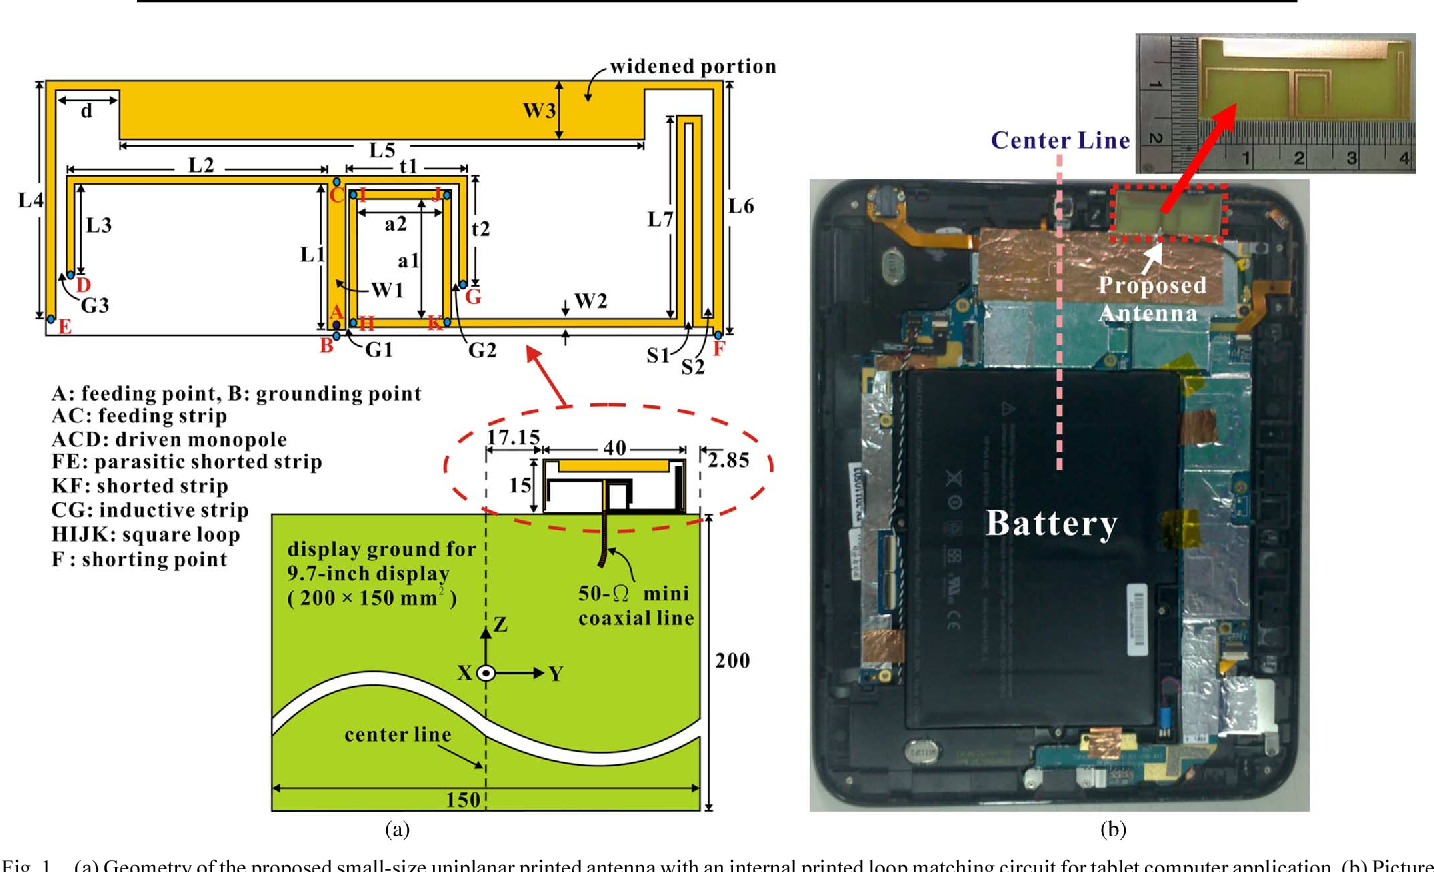 Internal Uniplanar Antenna For Lte Gsm Umts Operation In A Tablet Figure Matching Circuit Computer Semantic Scholar